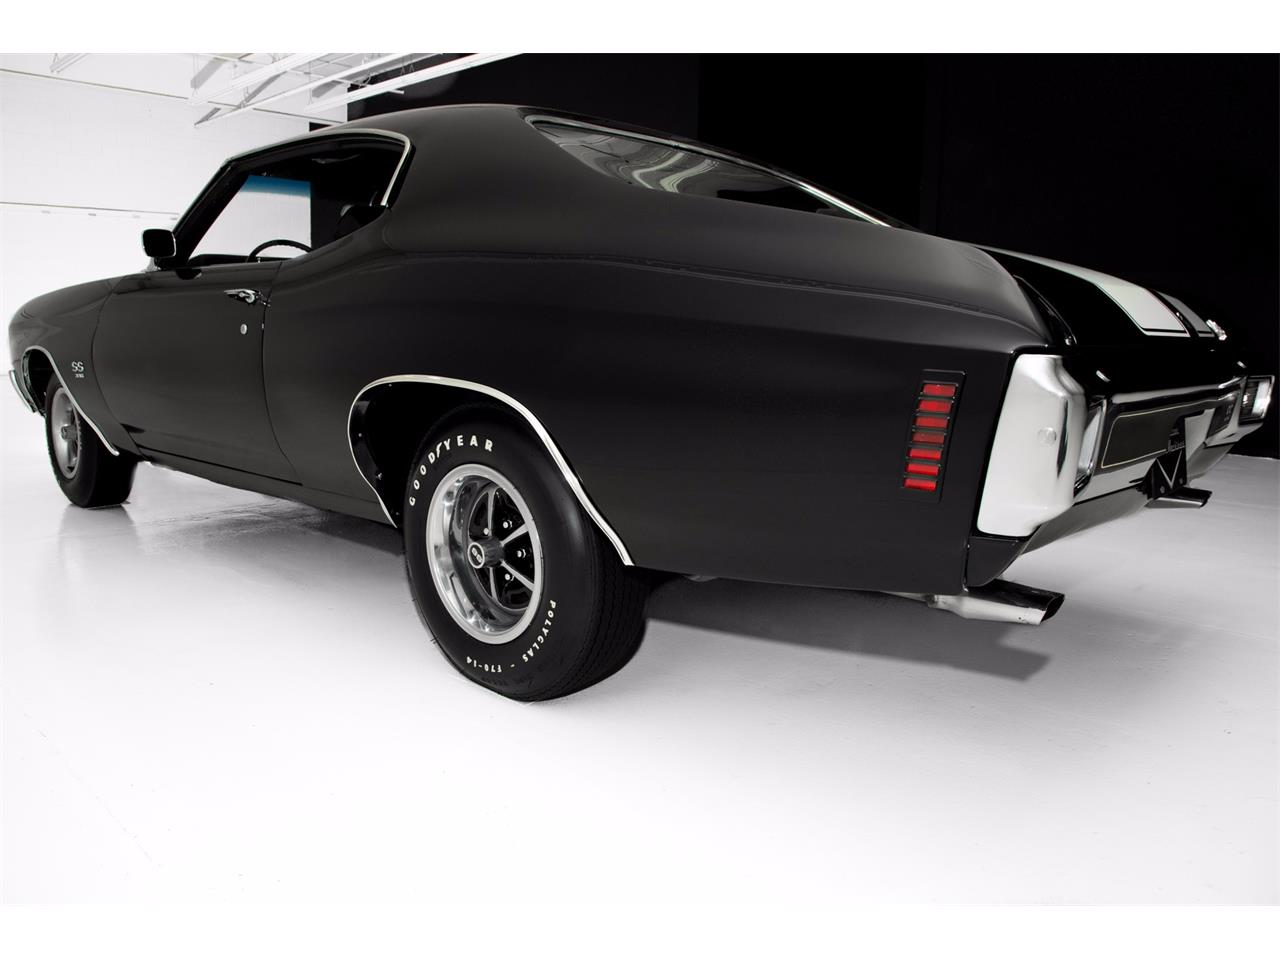 Large Picture of Classic 1970 Chevrolet Chevelle located in Des Moines Iowa - $59,900.00 Offered by American Dream Machines - LQPD